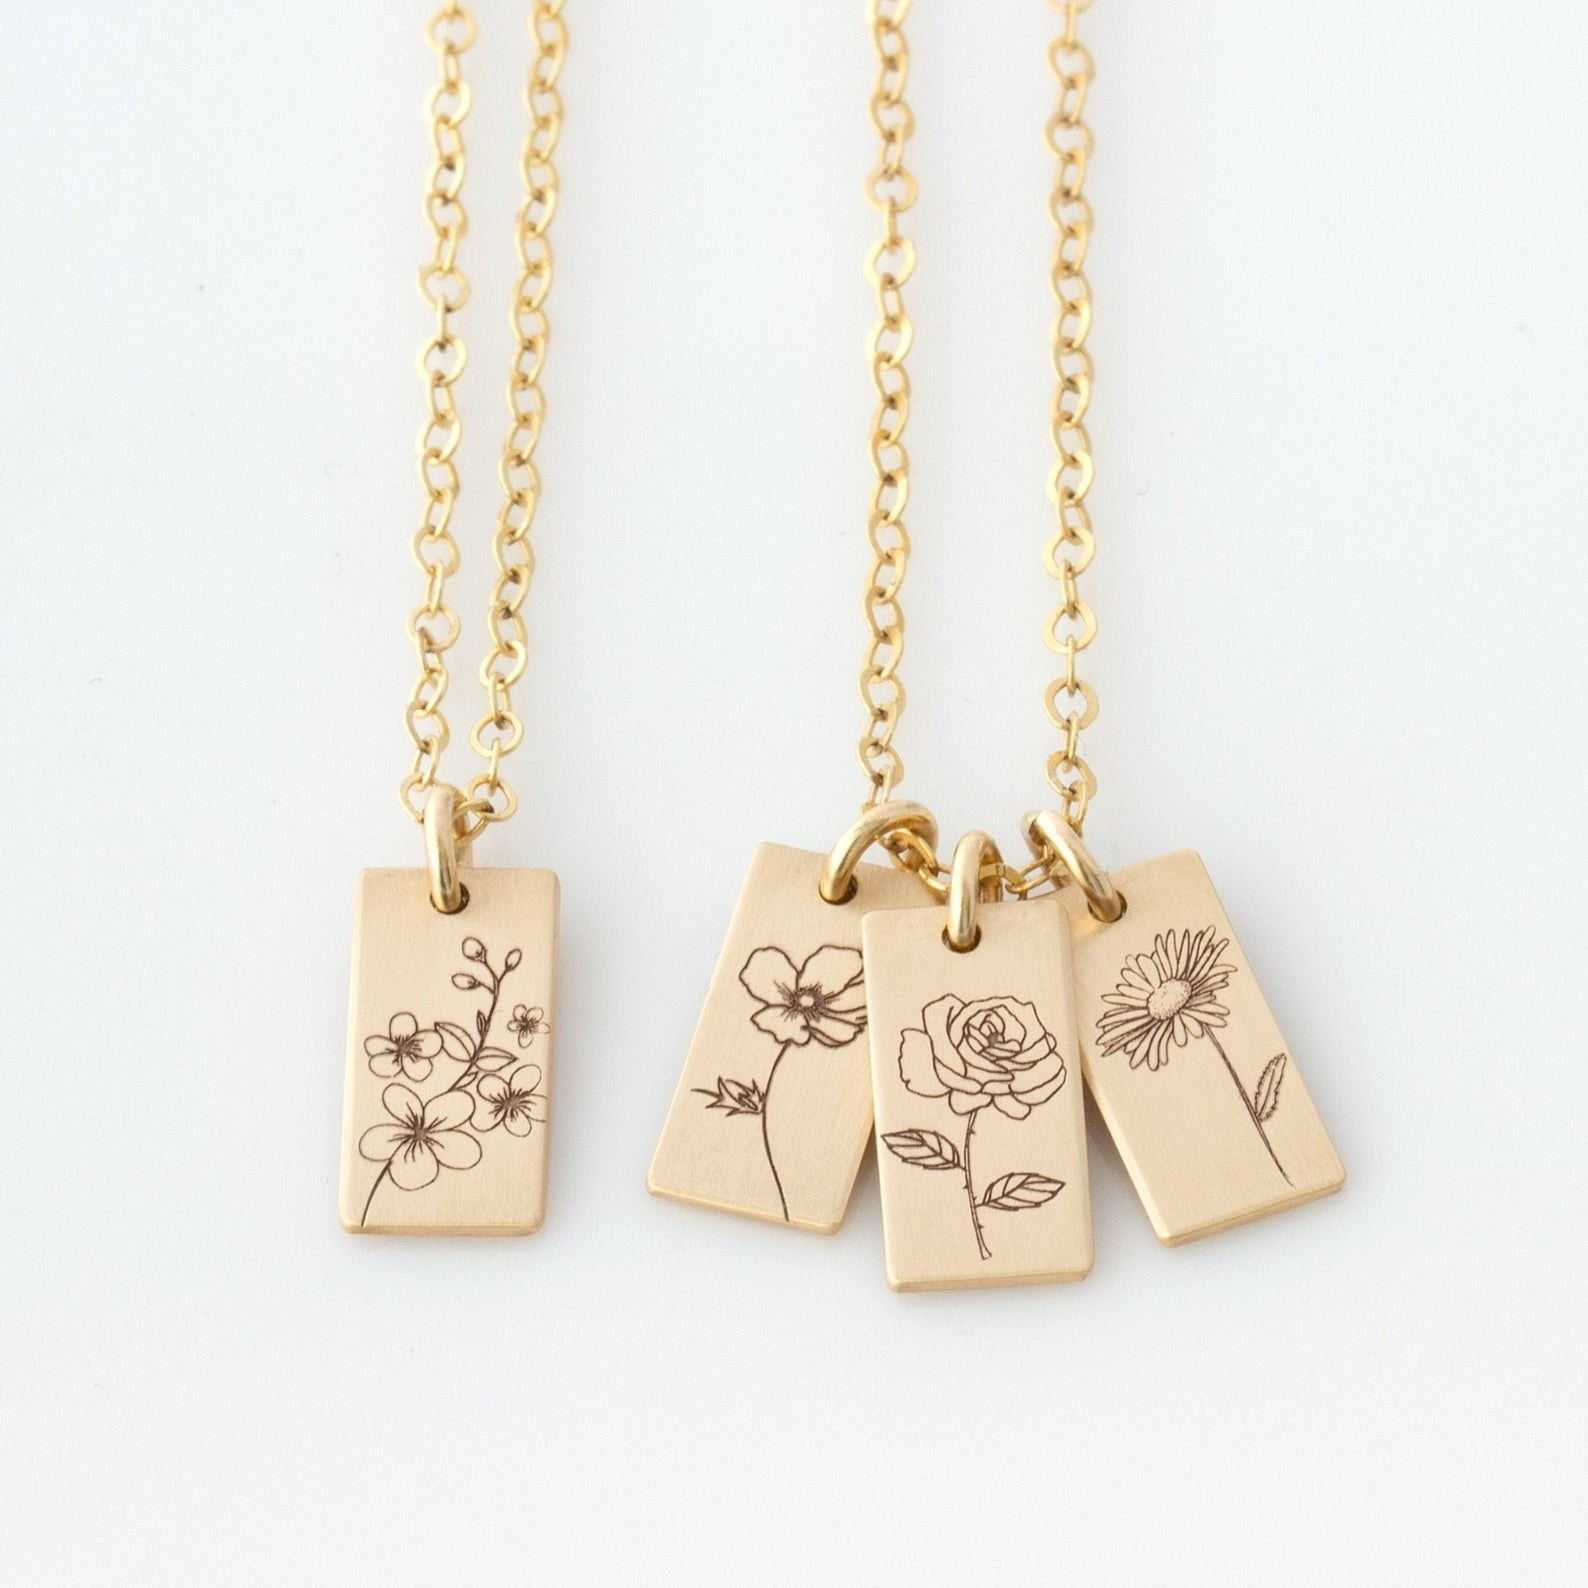 two gold necklaces with rectangular charms on them with flowers on each charm